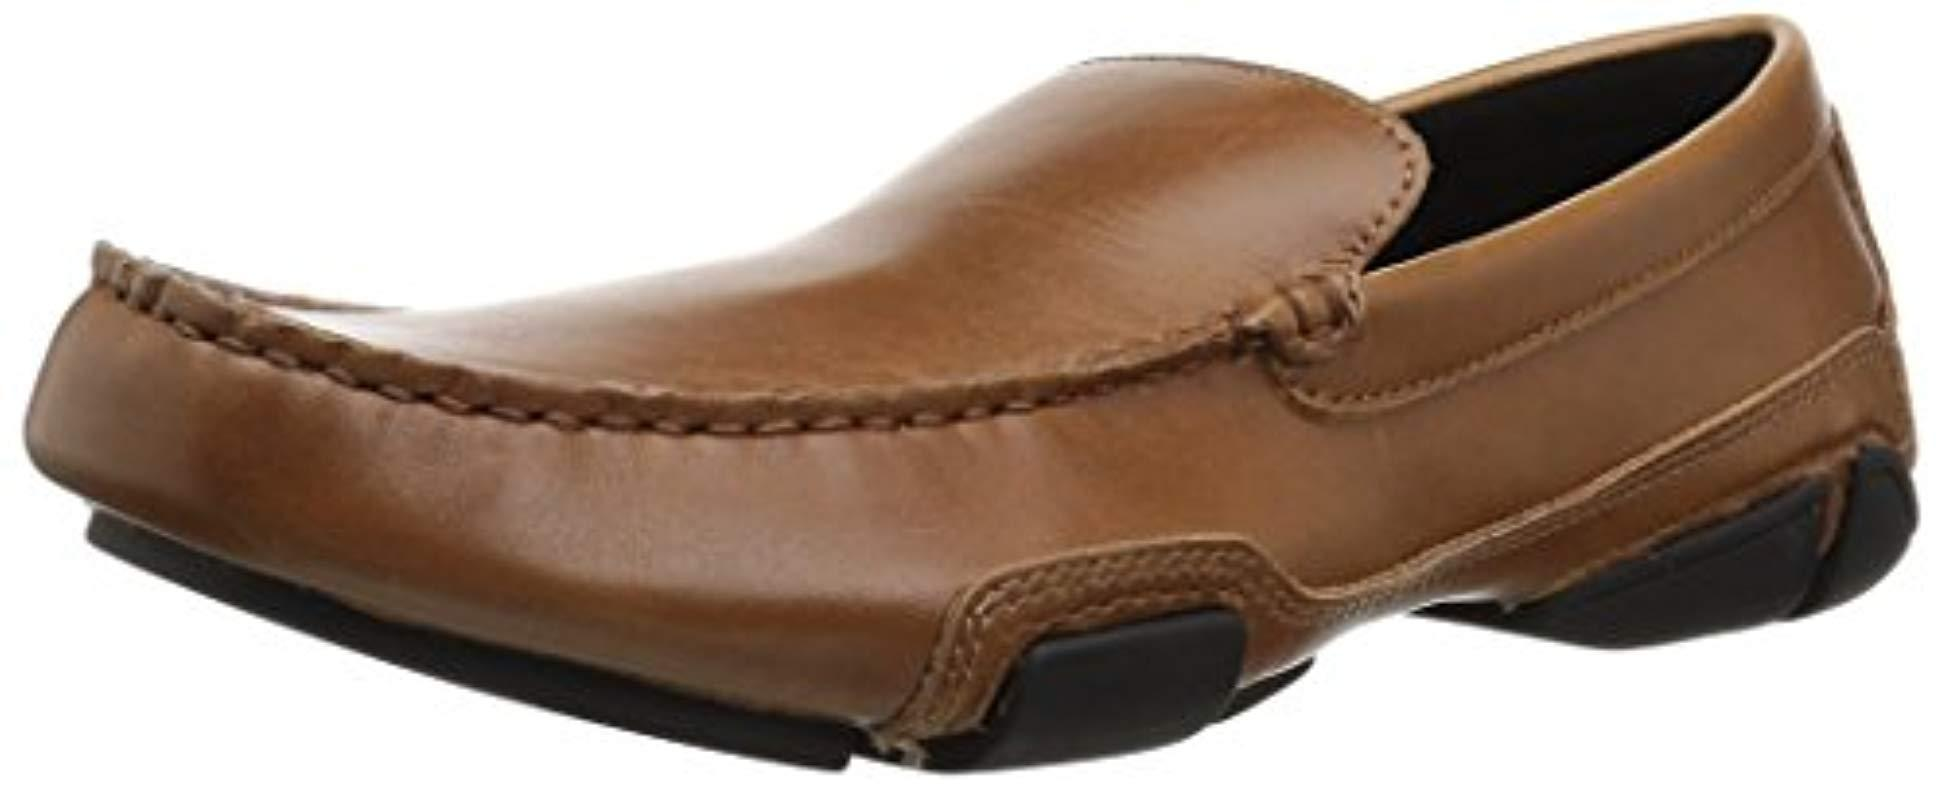 64723413694 Lyst - Kenneth Cole Reaction World Hold On Loafer in Brown for Men